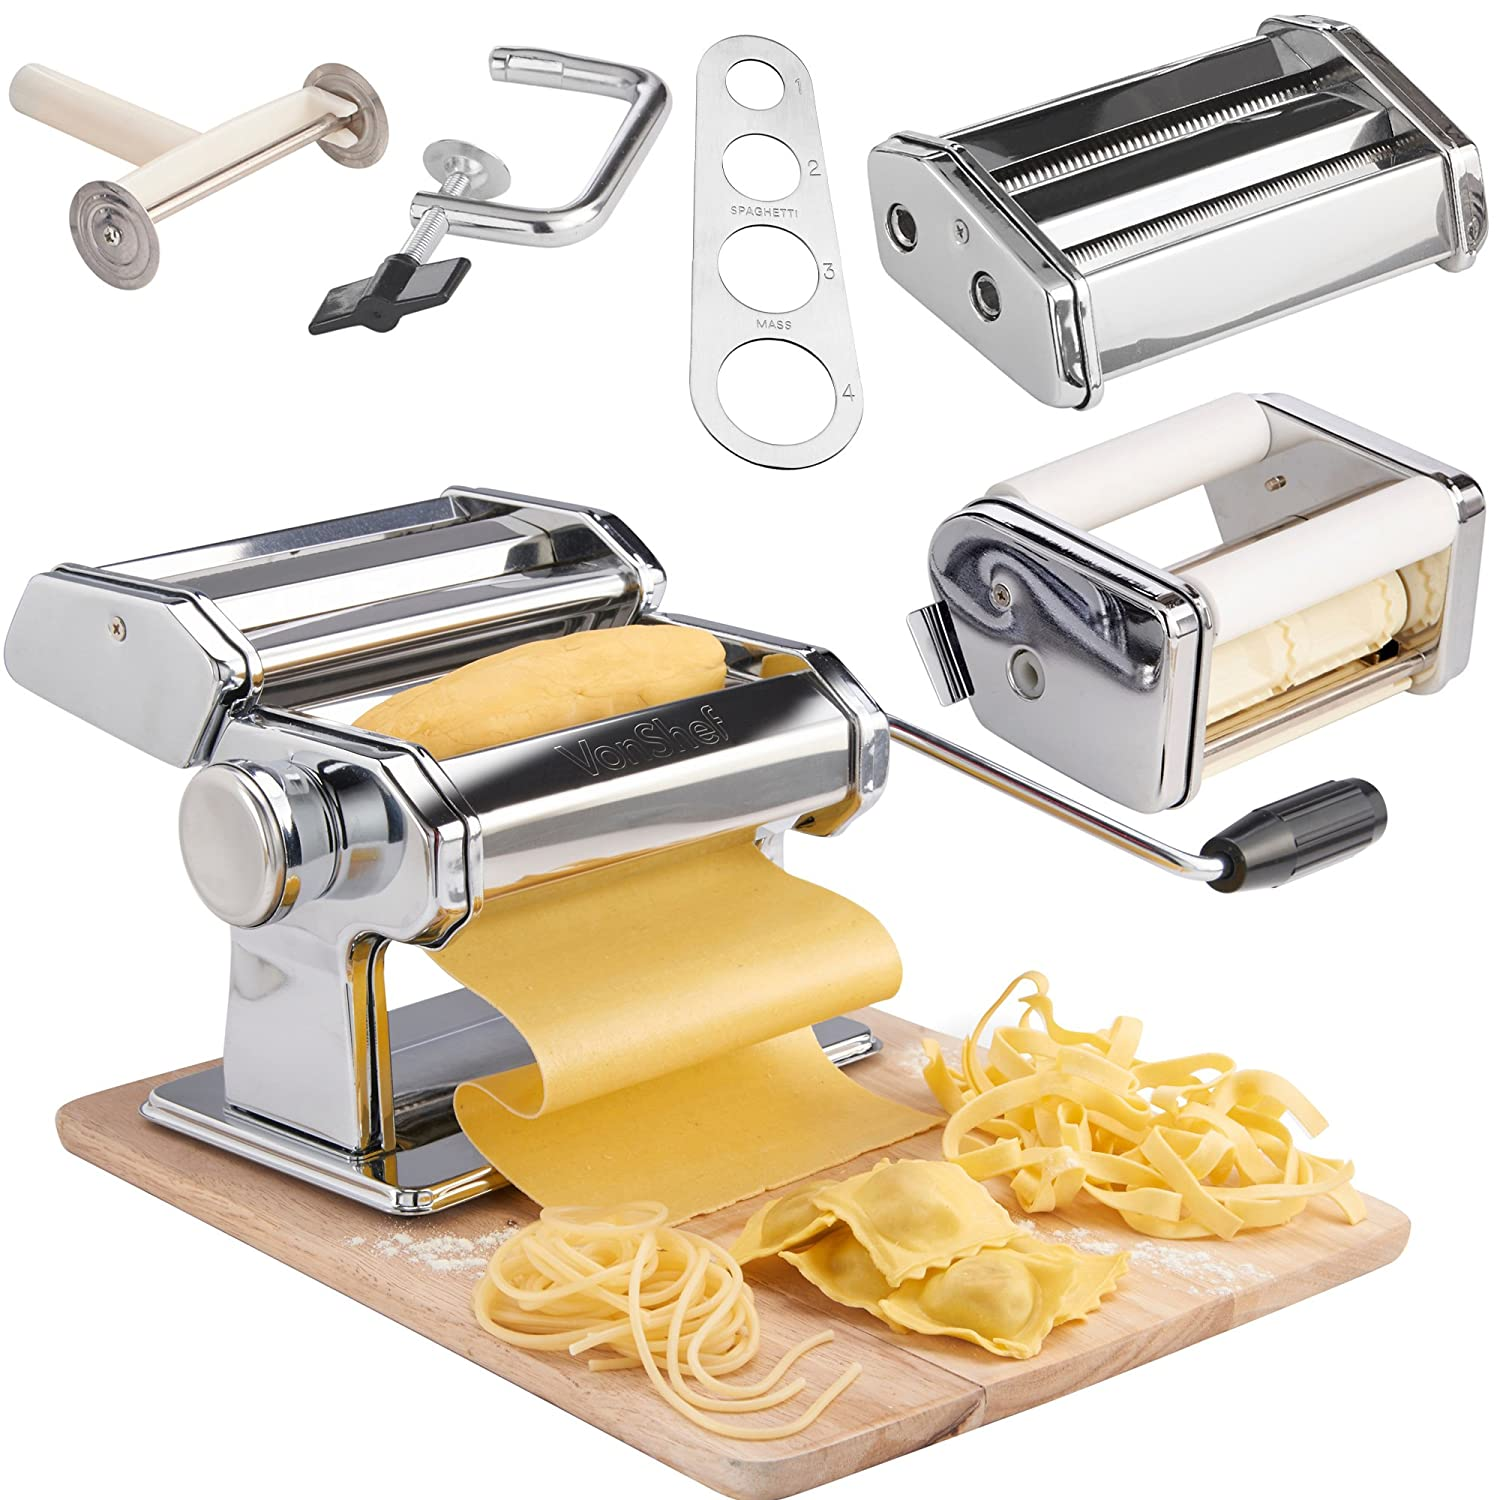 VonShef Pasta Maker, 3 in 1 Pasta Machine Stainless Steel, Pasta Roller with 3 Cut Press Blade Settings, Table Top Clamp and Pasta Measuring Tool for Homemade Spaghetti, Fettuccini